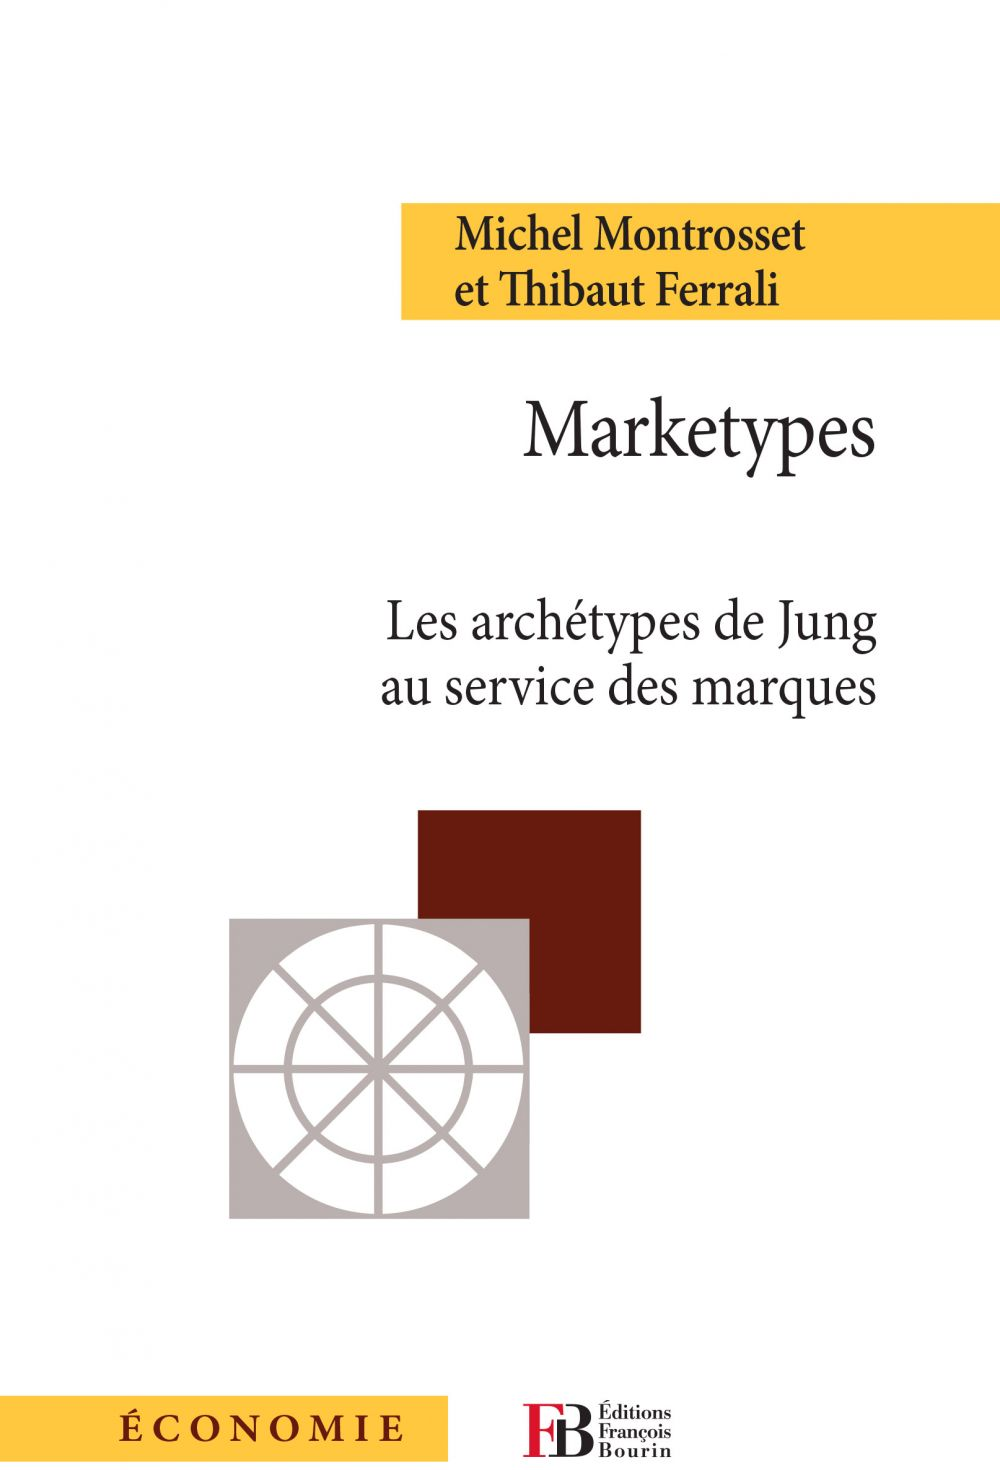 Marketypes